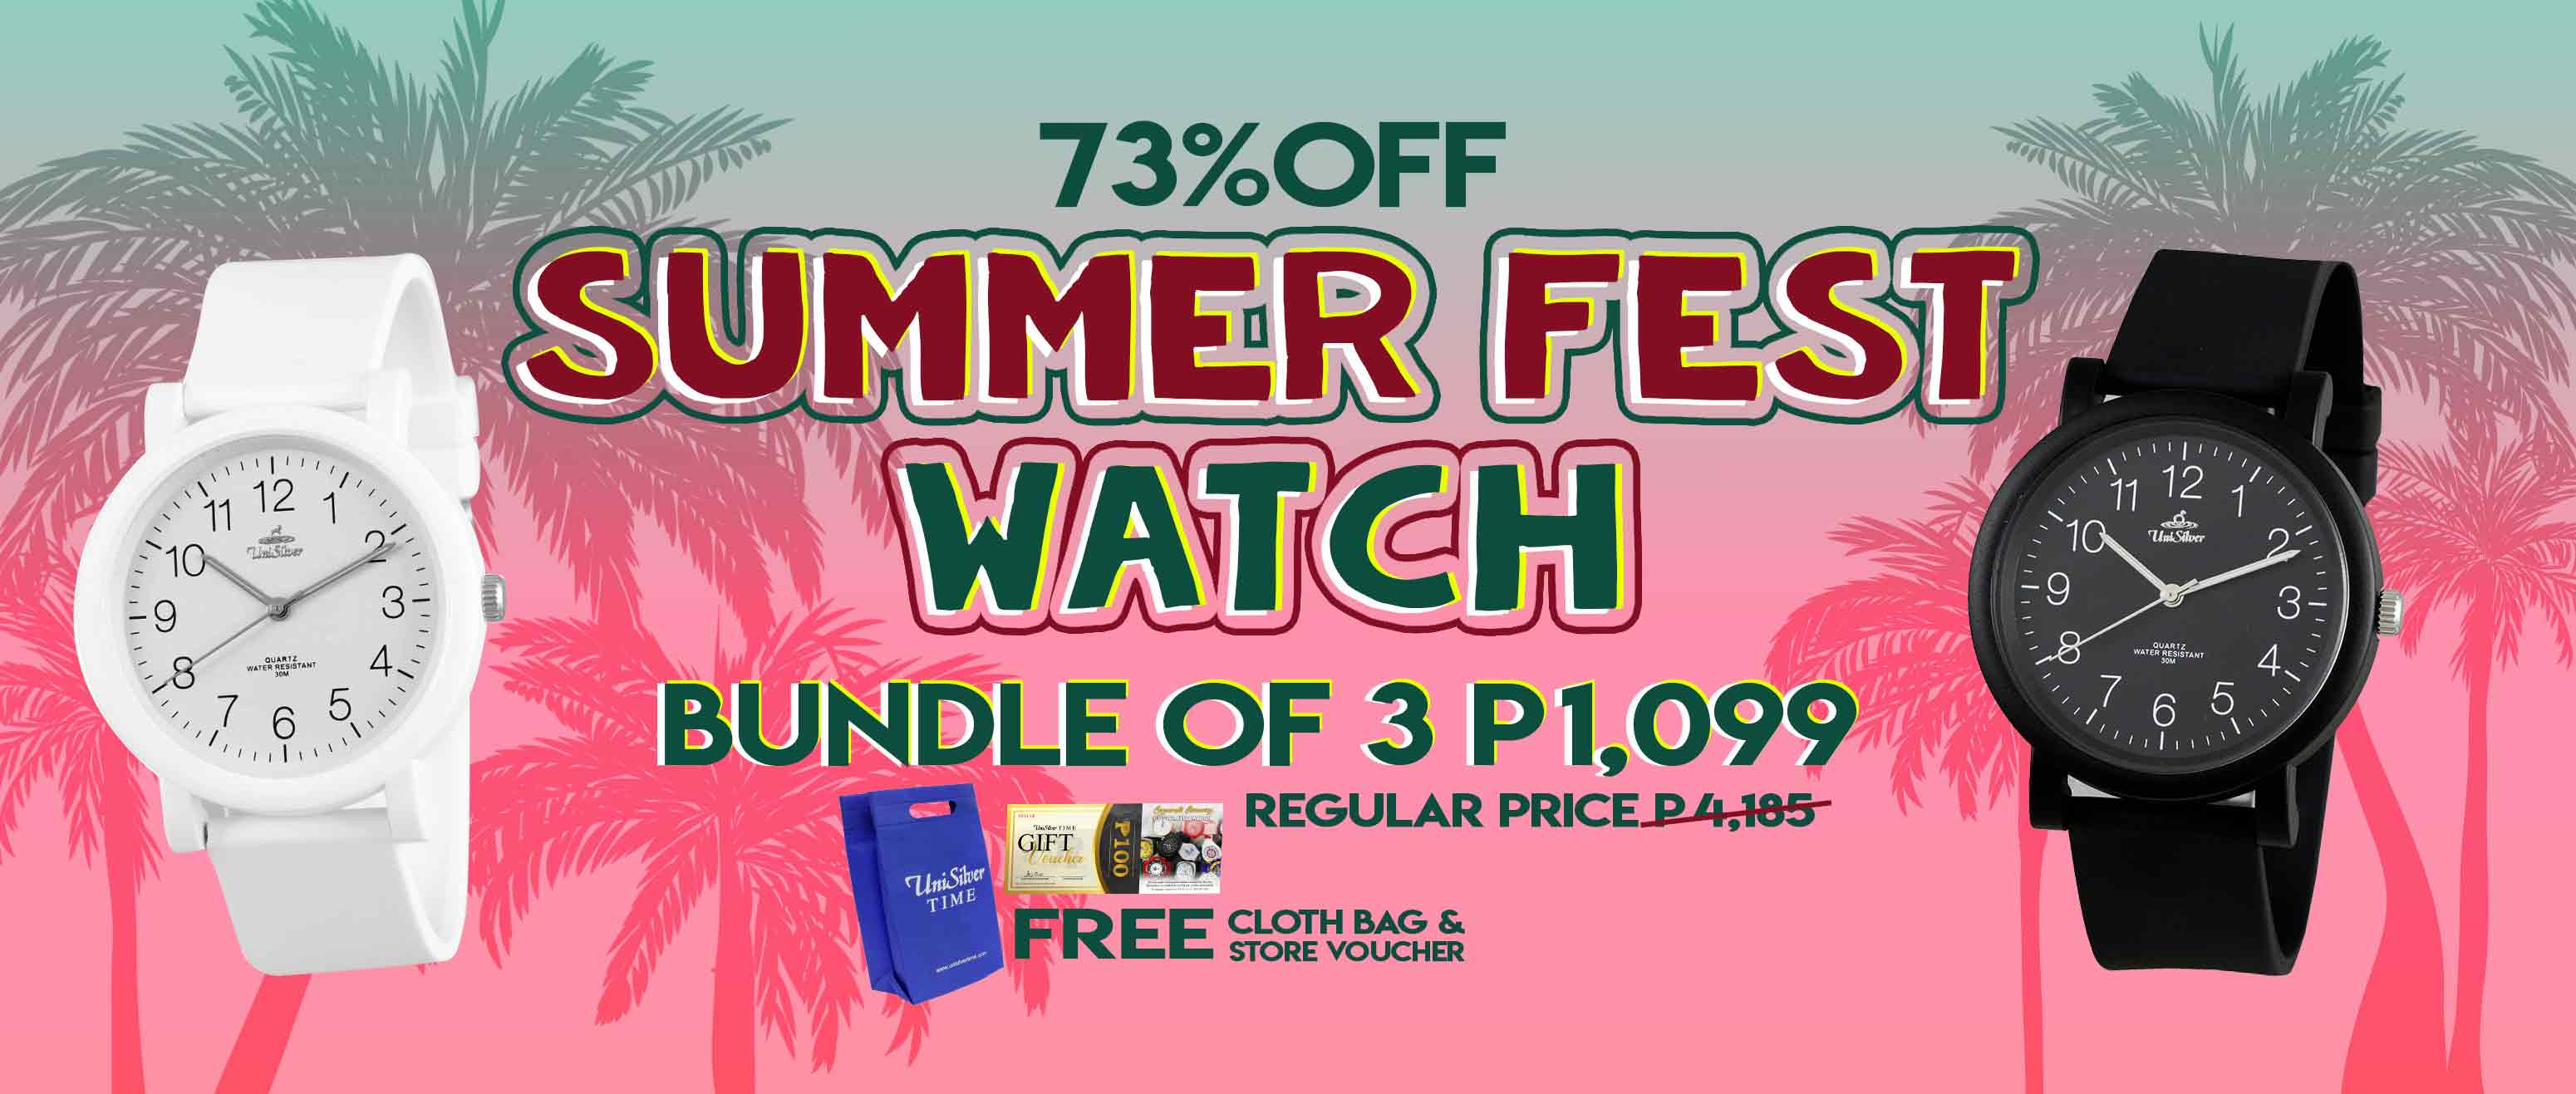 Take advantage of UniSilver TIME's SUMMER FEST WATCH: pick any 3 watches for PHP1,099 only! That's 73% off from the regular price!  Plus you'll also get FREE cloth bag and store voucher.  These fun watches are perfect for your summer outfits.  Promo available only online http://www.unisilvertime.com/    Free shipping nationwide and COD option is available. Shop now >>> https://bit.ly/3hckVNc